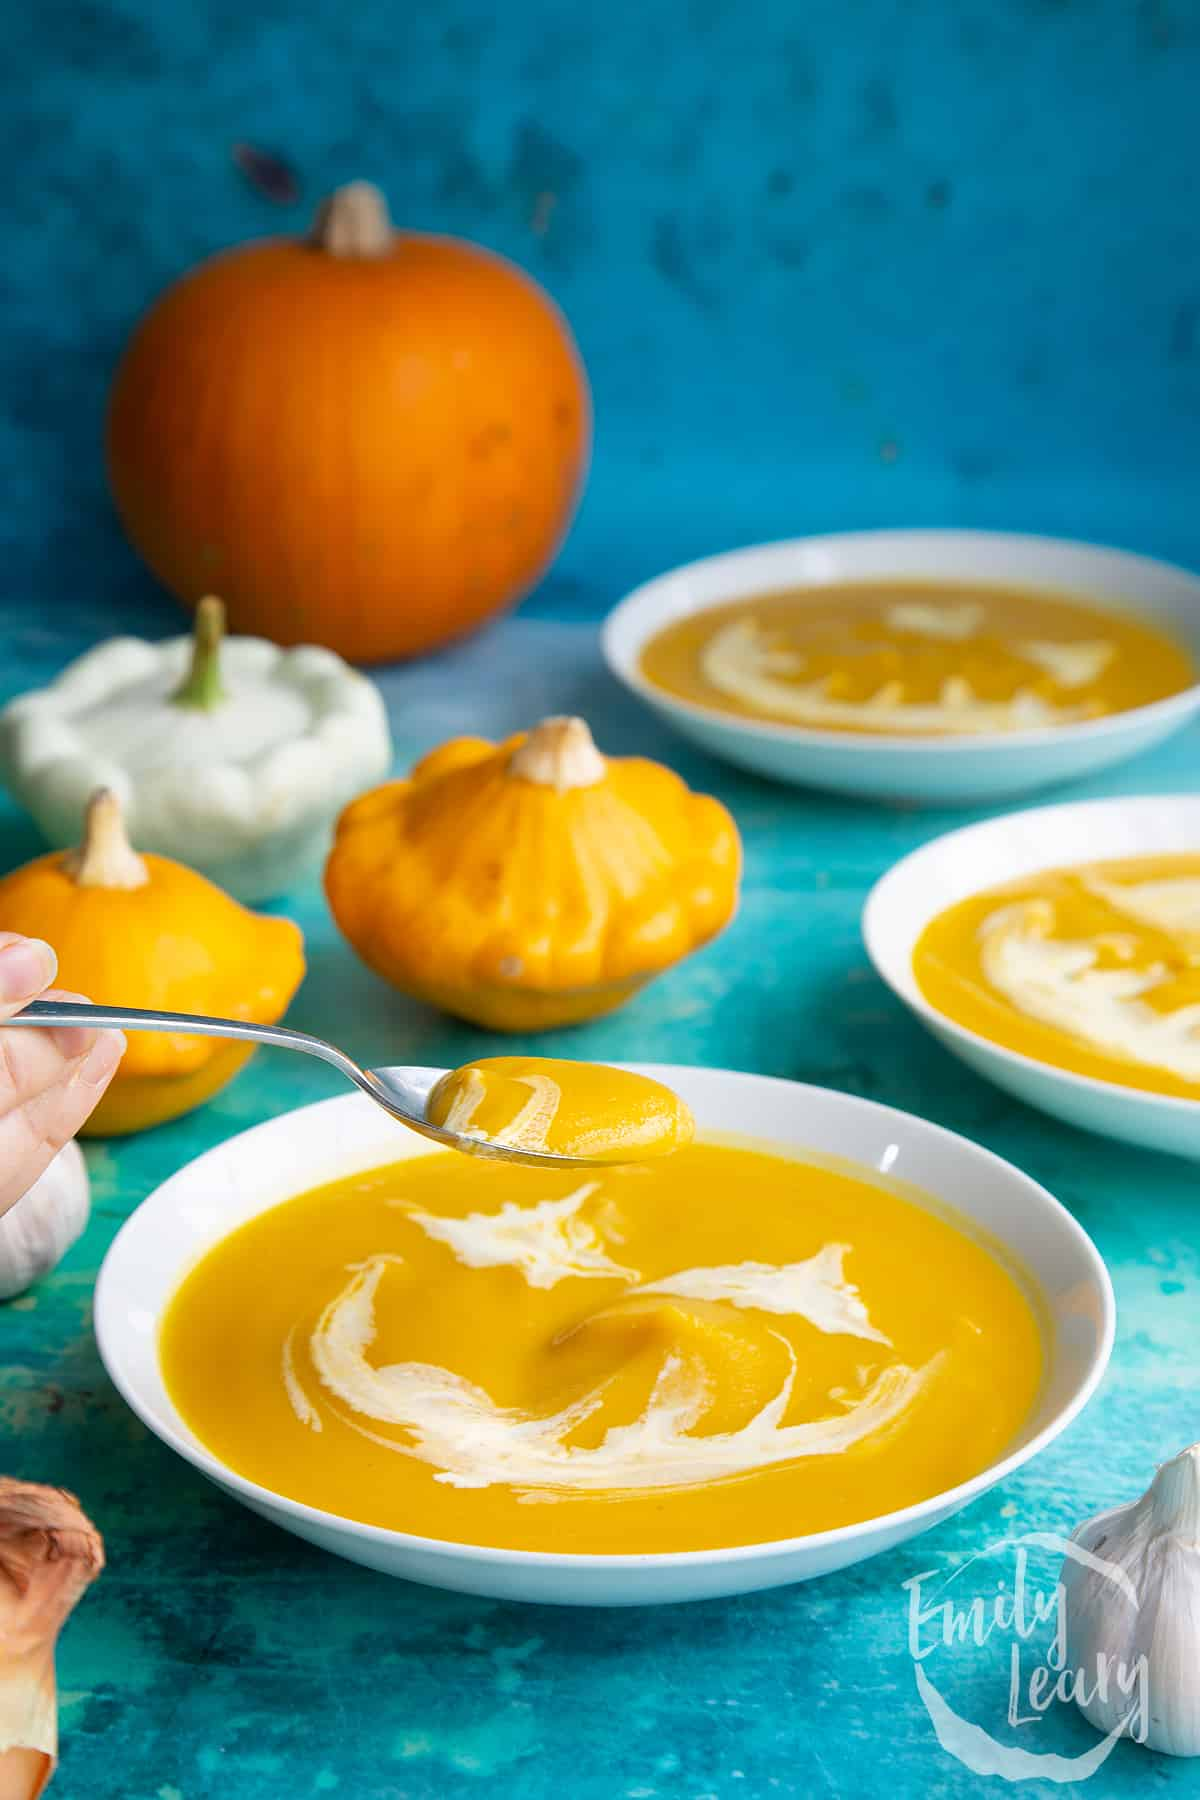 Pumpkin and sweet potato soup in a white bowl. The soup has cream swirled on top to resemble a jack'o'lantern. A spoon lifts some of the soup.